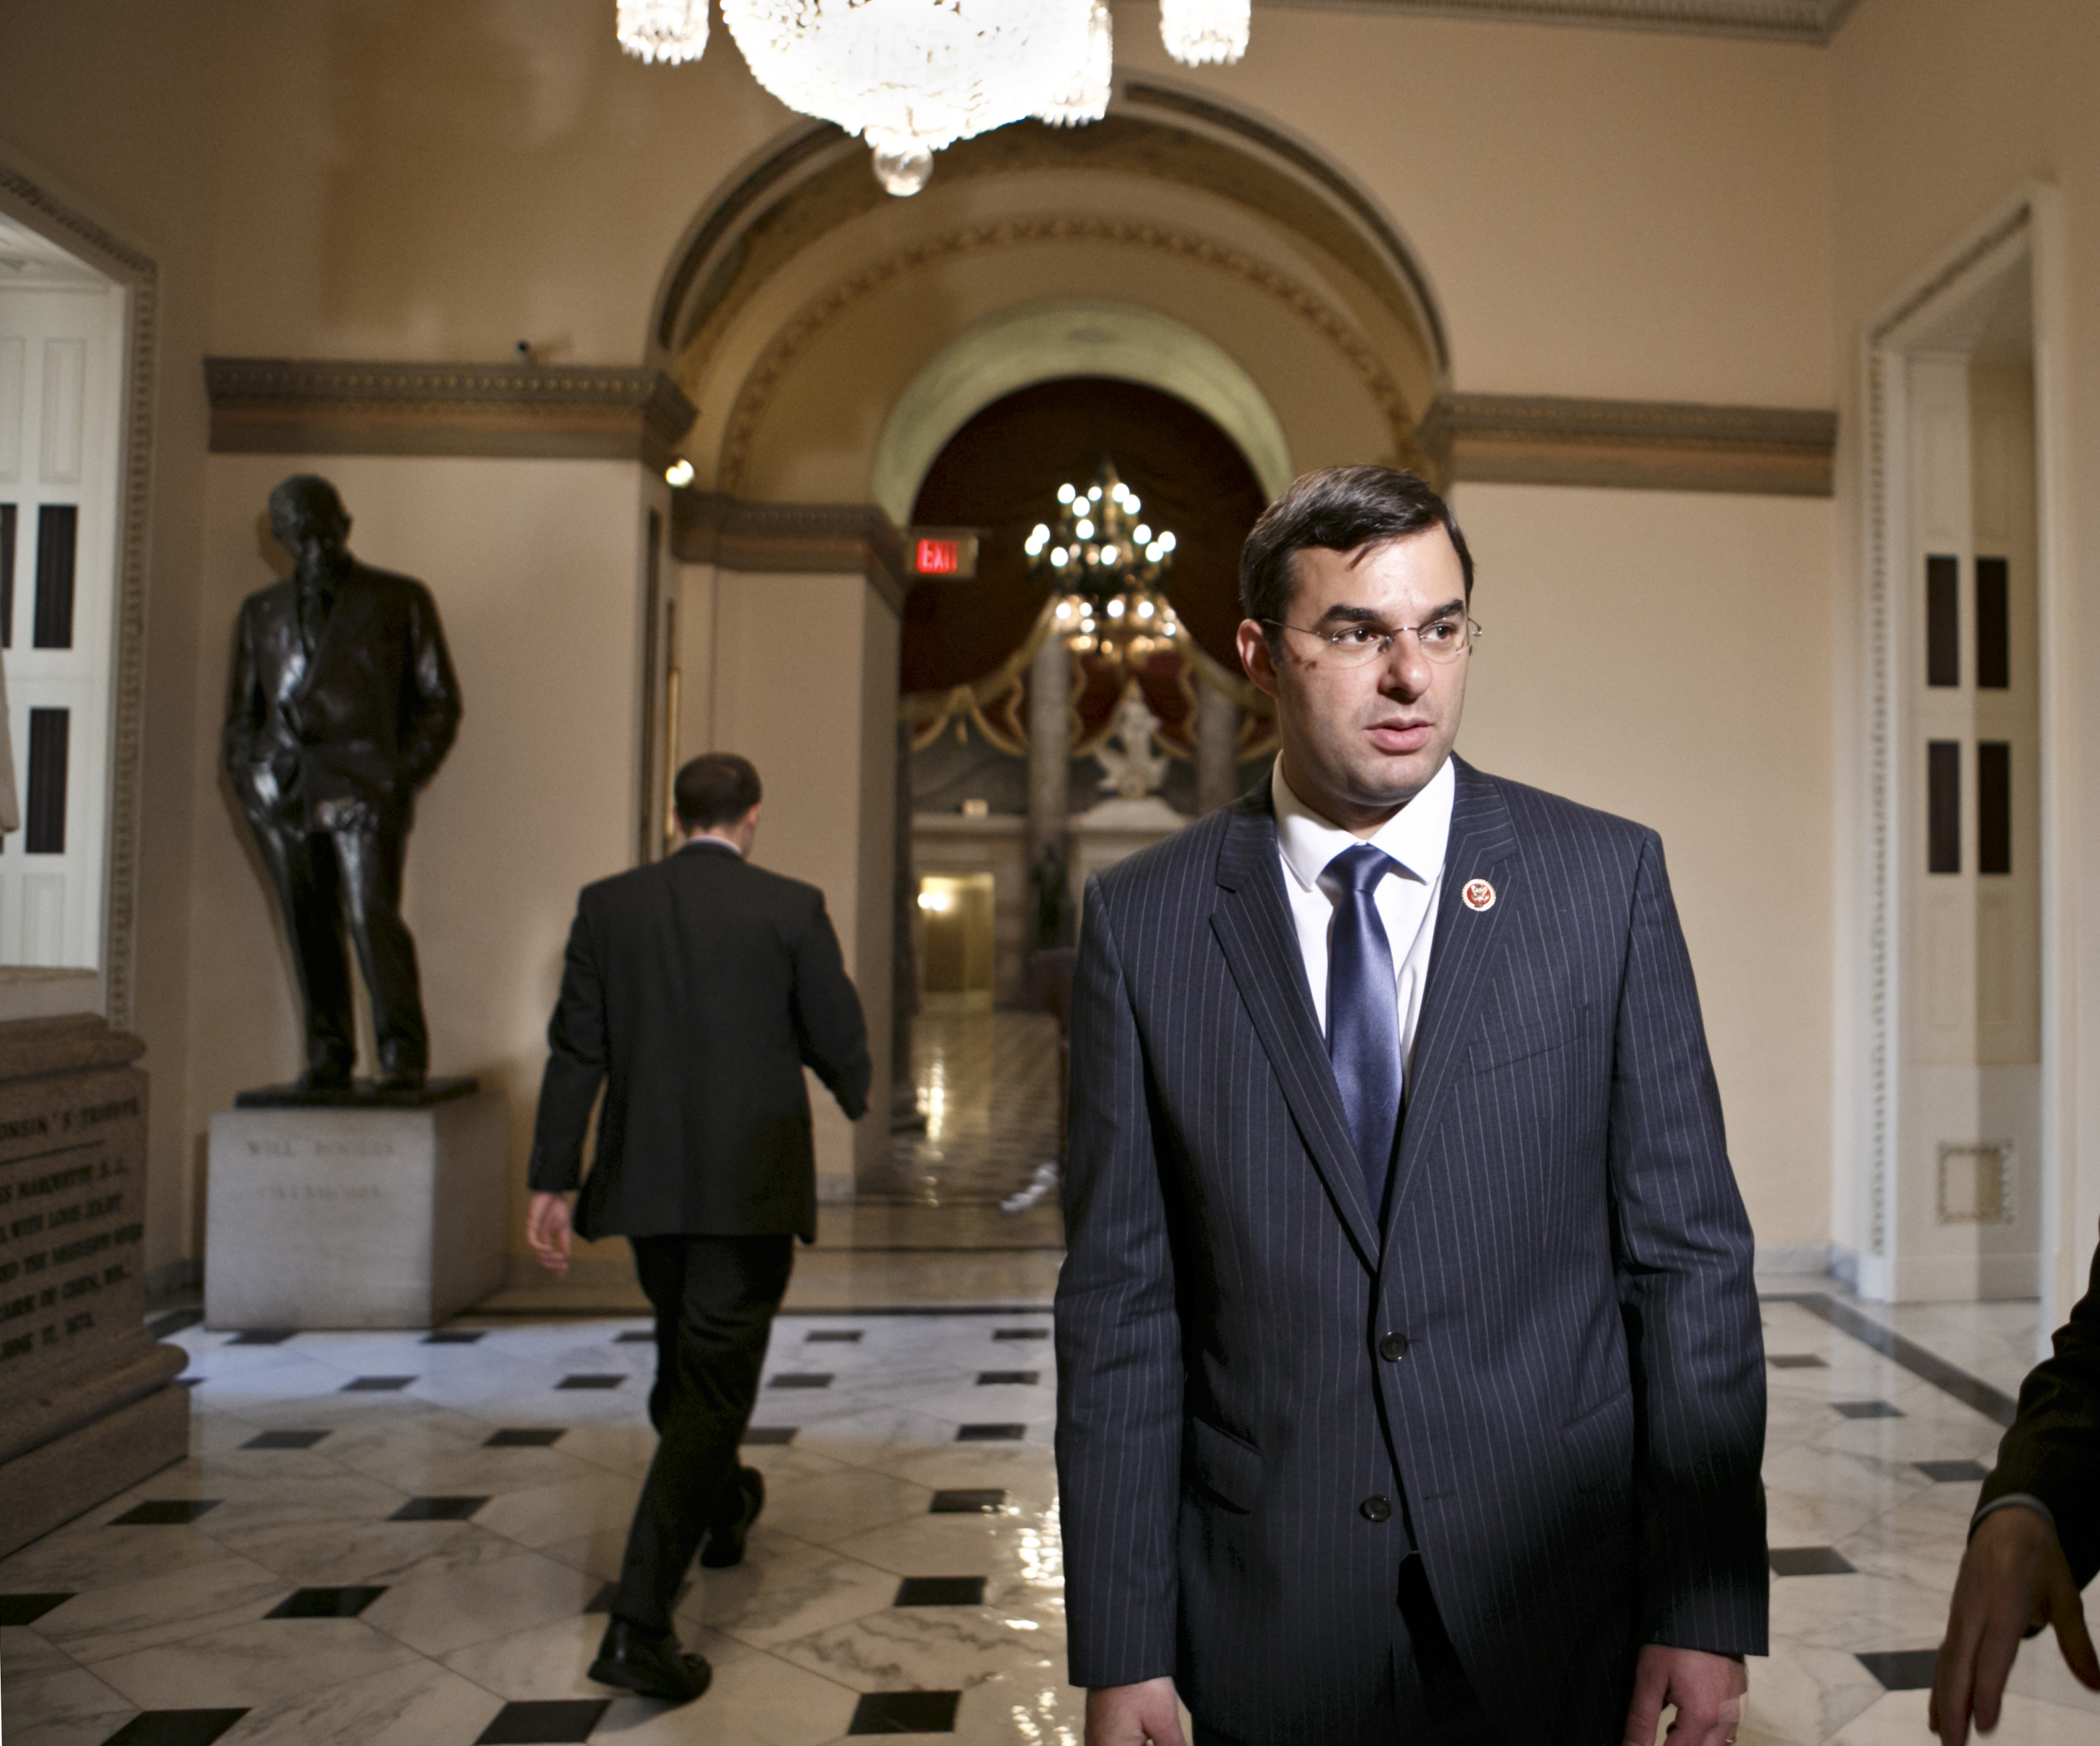 Rep. Justin Amash, R-Mich., at the Capitol on July 24, 2013.